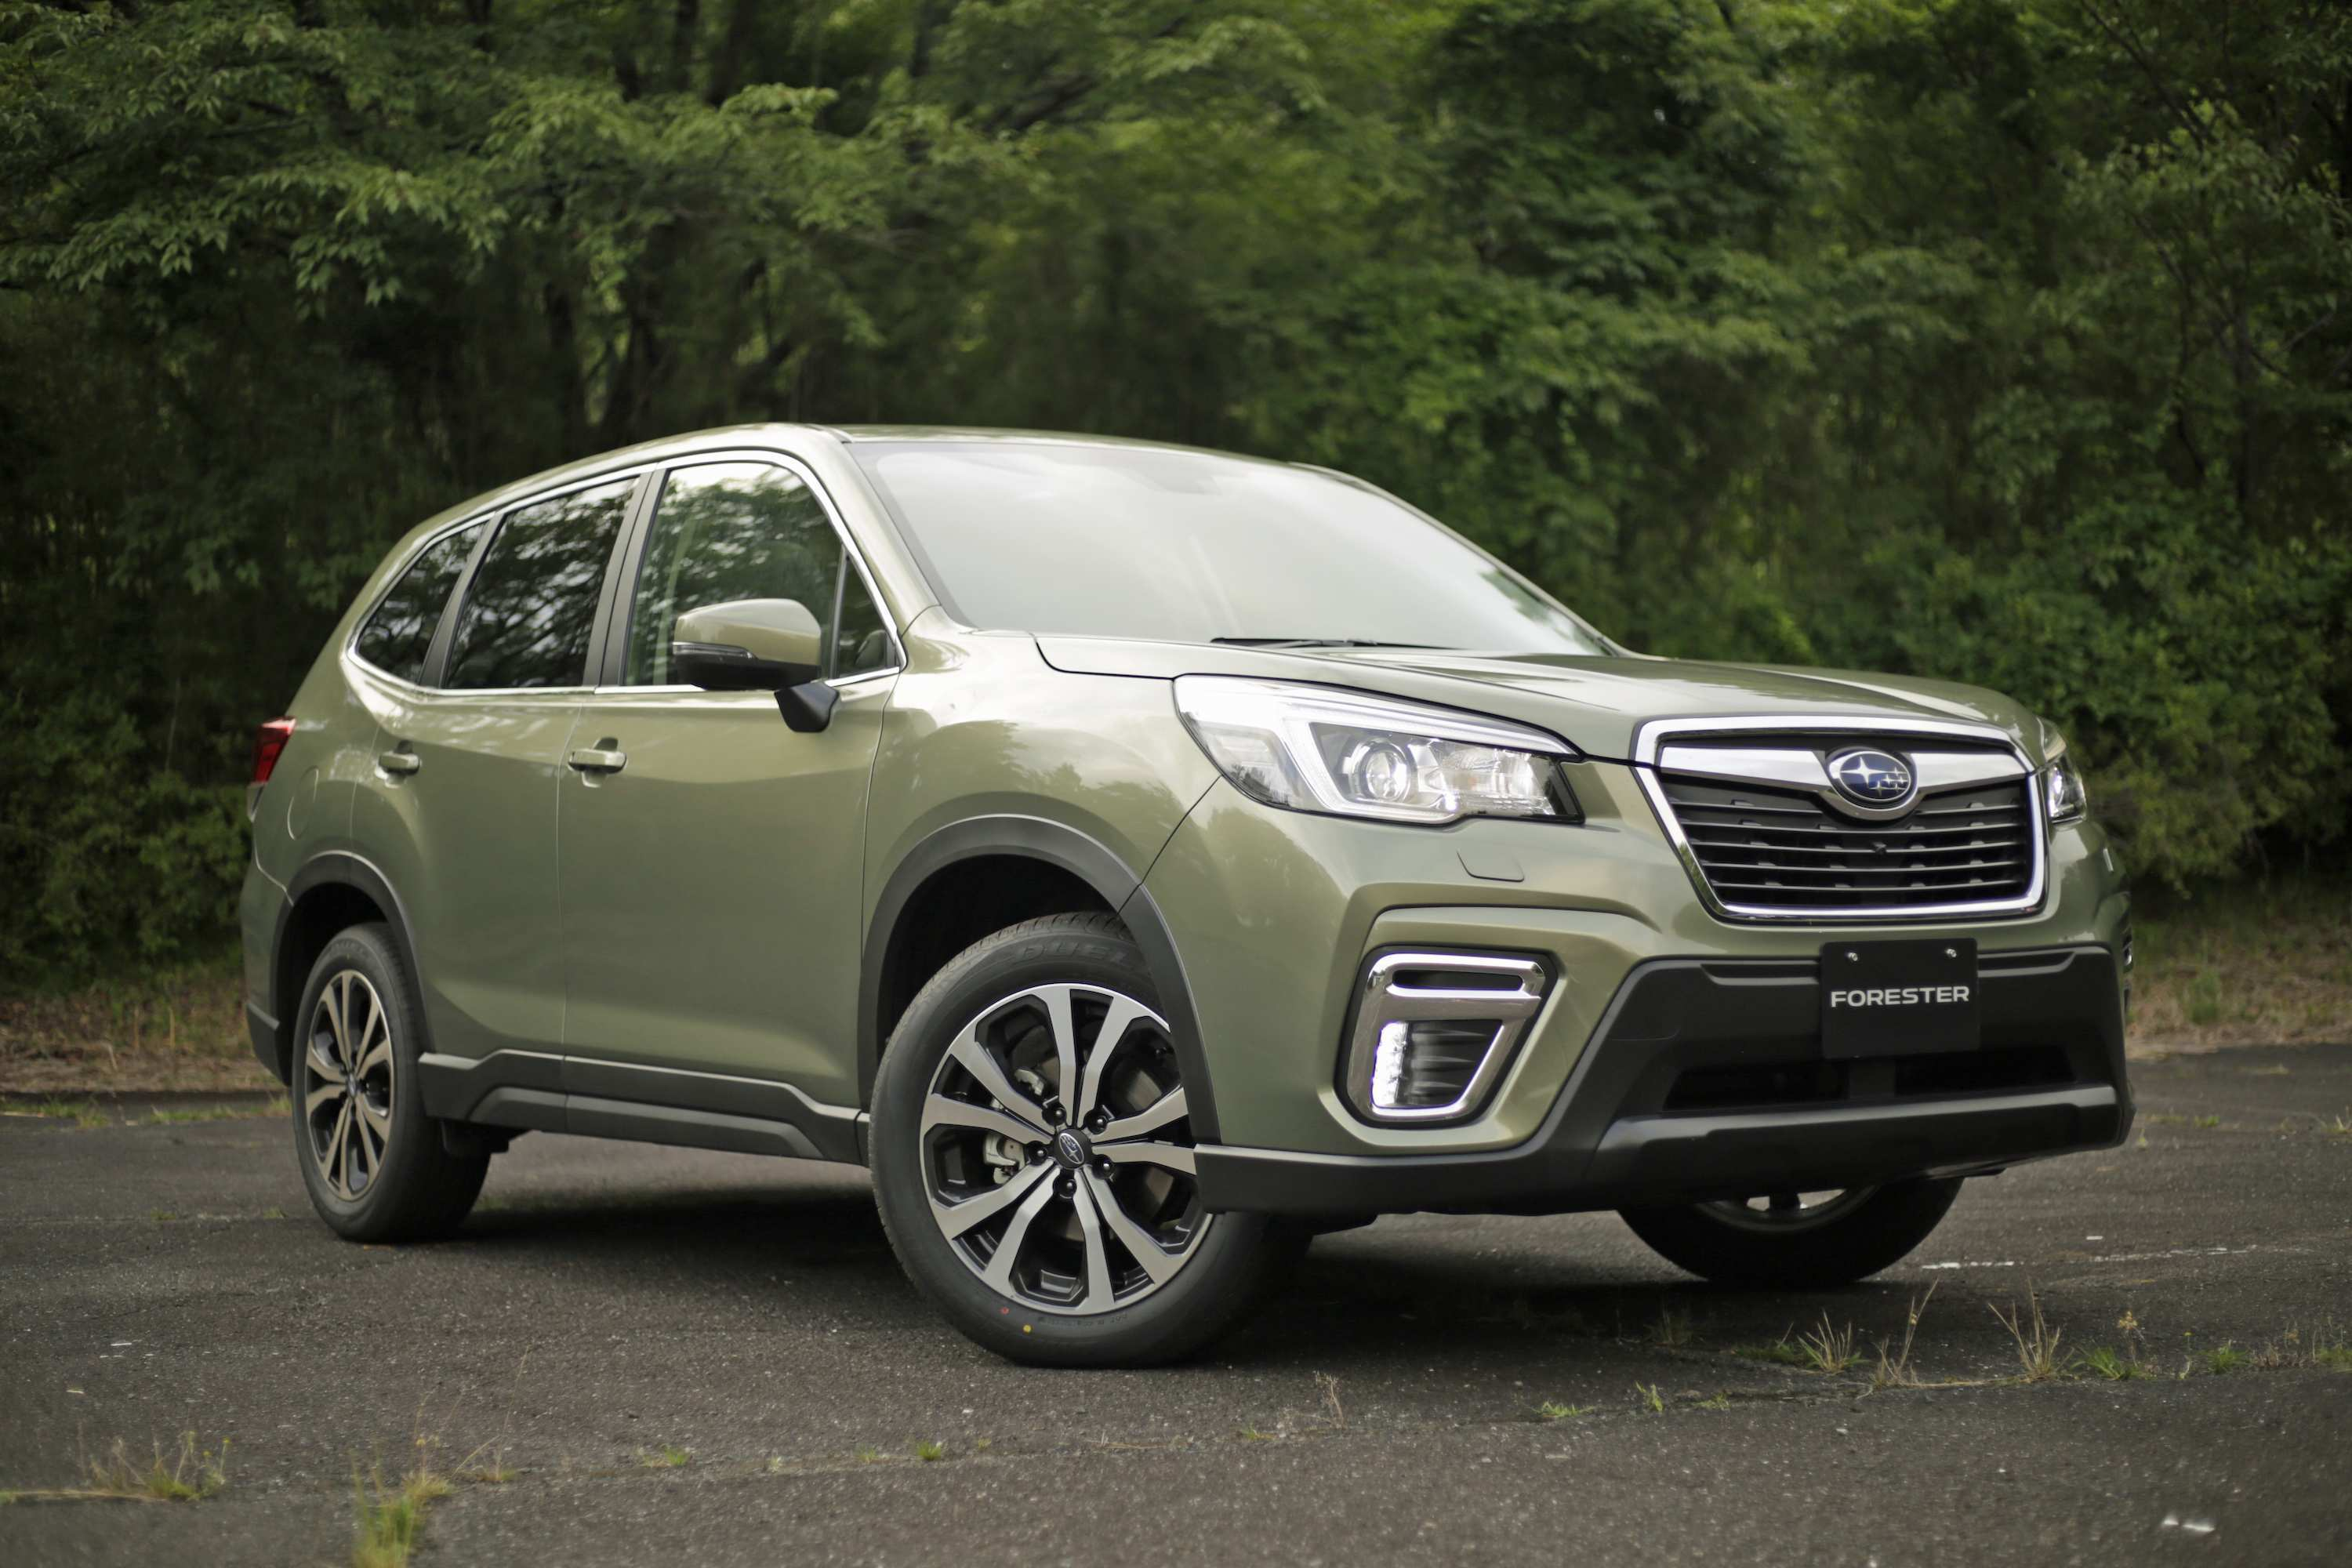 43 Concept of 2019 Subaru Forester Mpg History with 2019 Subaru Forester Mpg